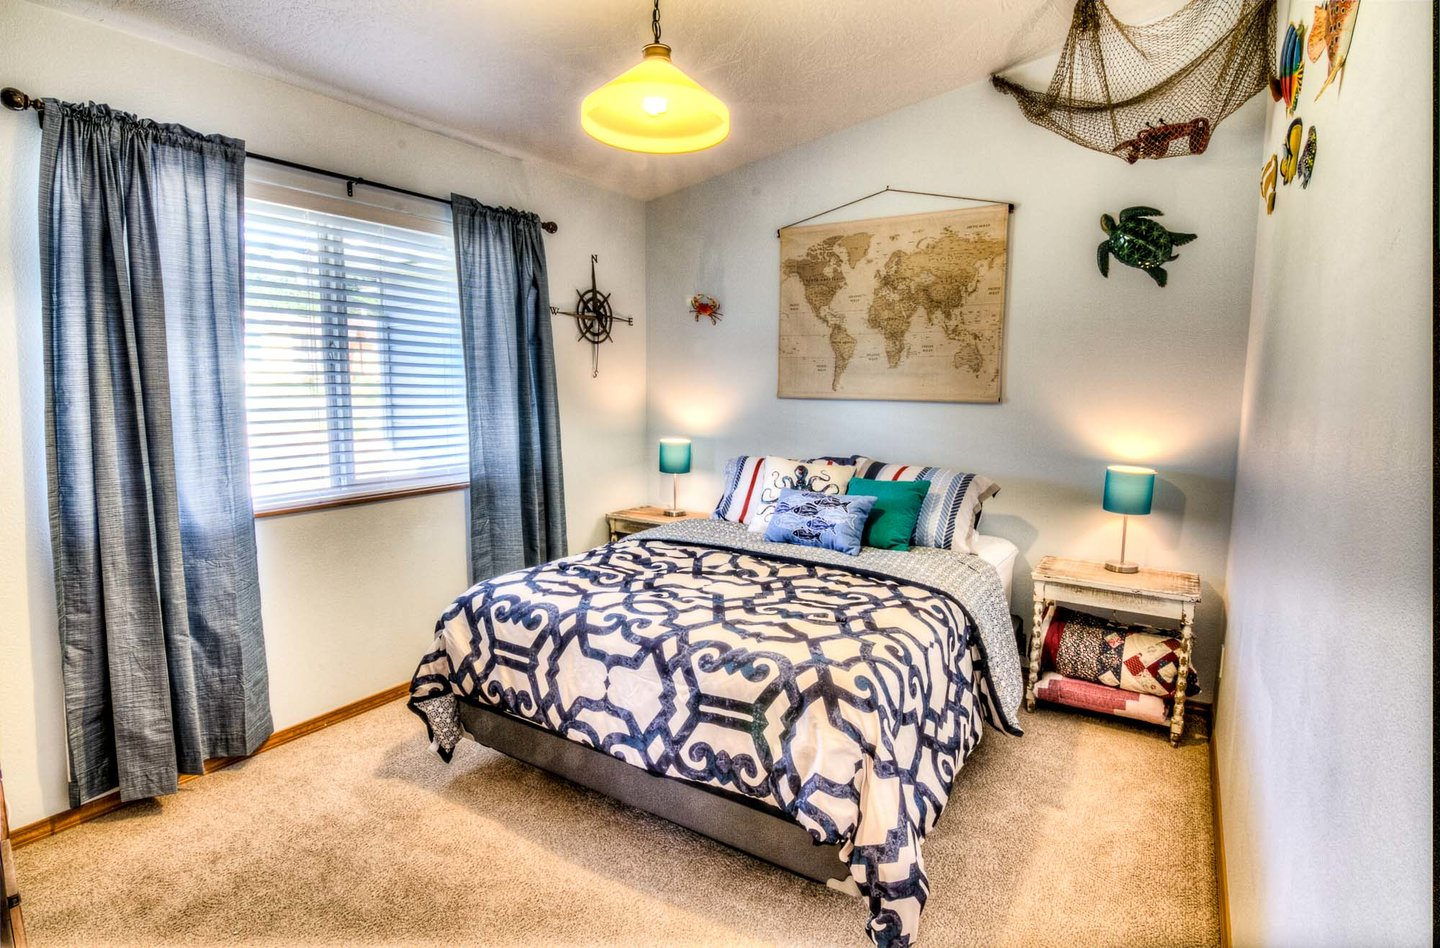 Enjoy the queen size bed in this cheerful bedroom.